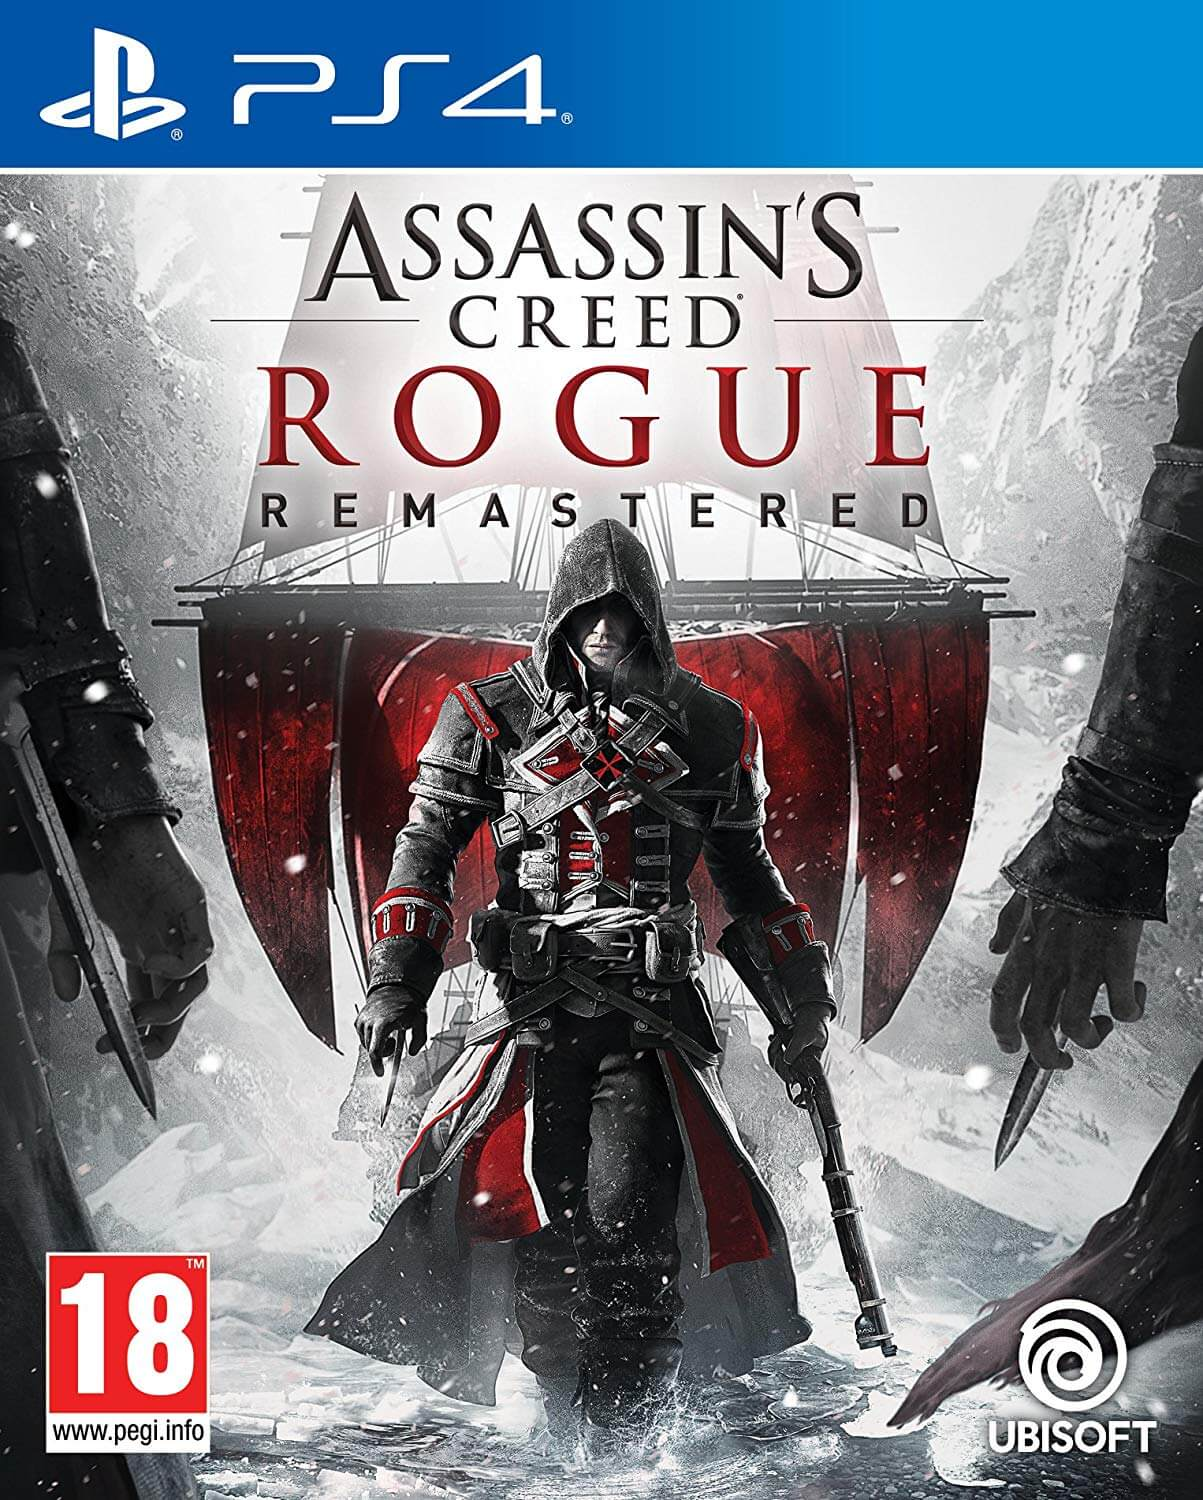 Assasins's Assasins's Creed Rogue Creed Remastered Creed Assasins's Rogue Remastered Rogue Assasins's Creed Remastered CrdoeBWQx